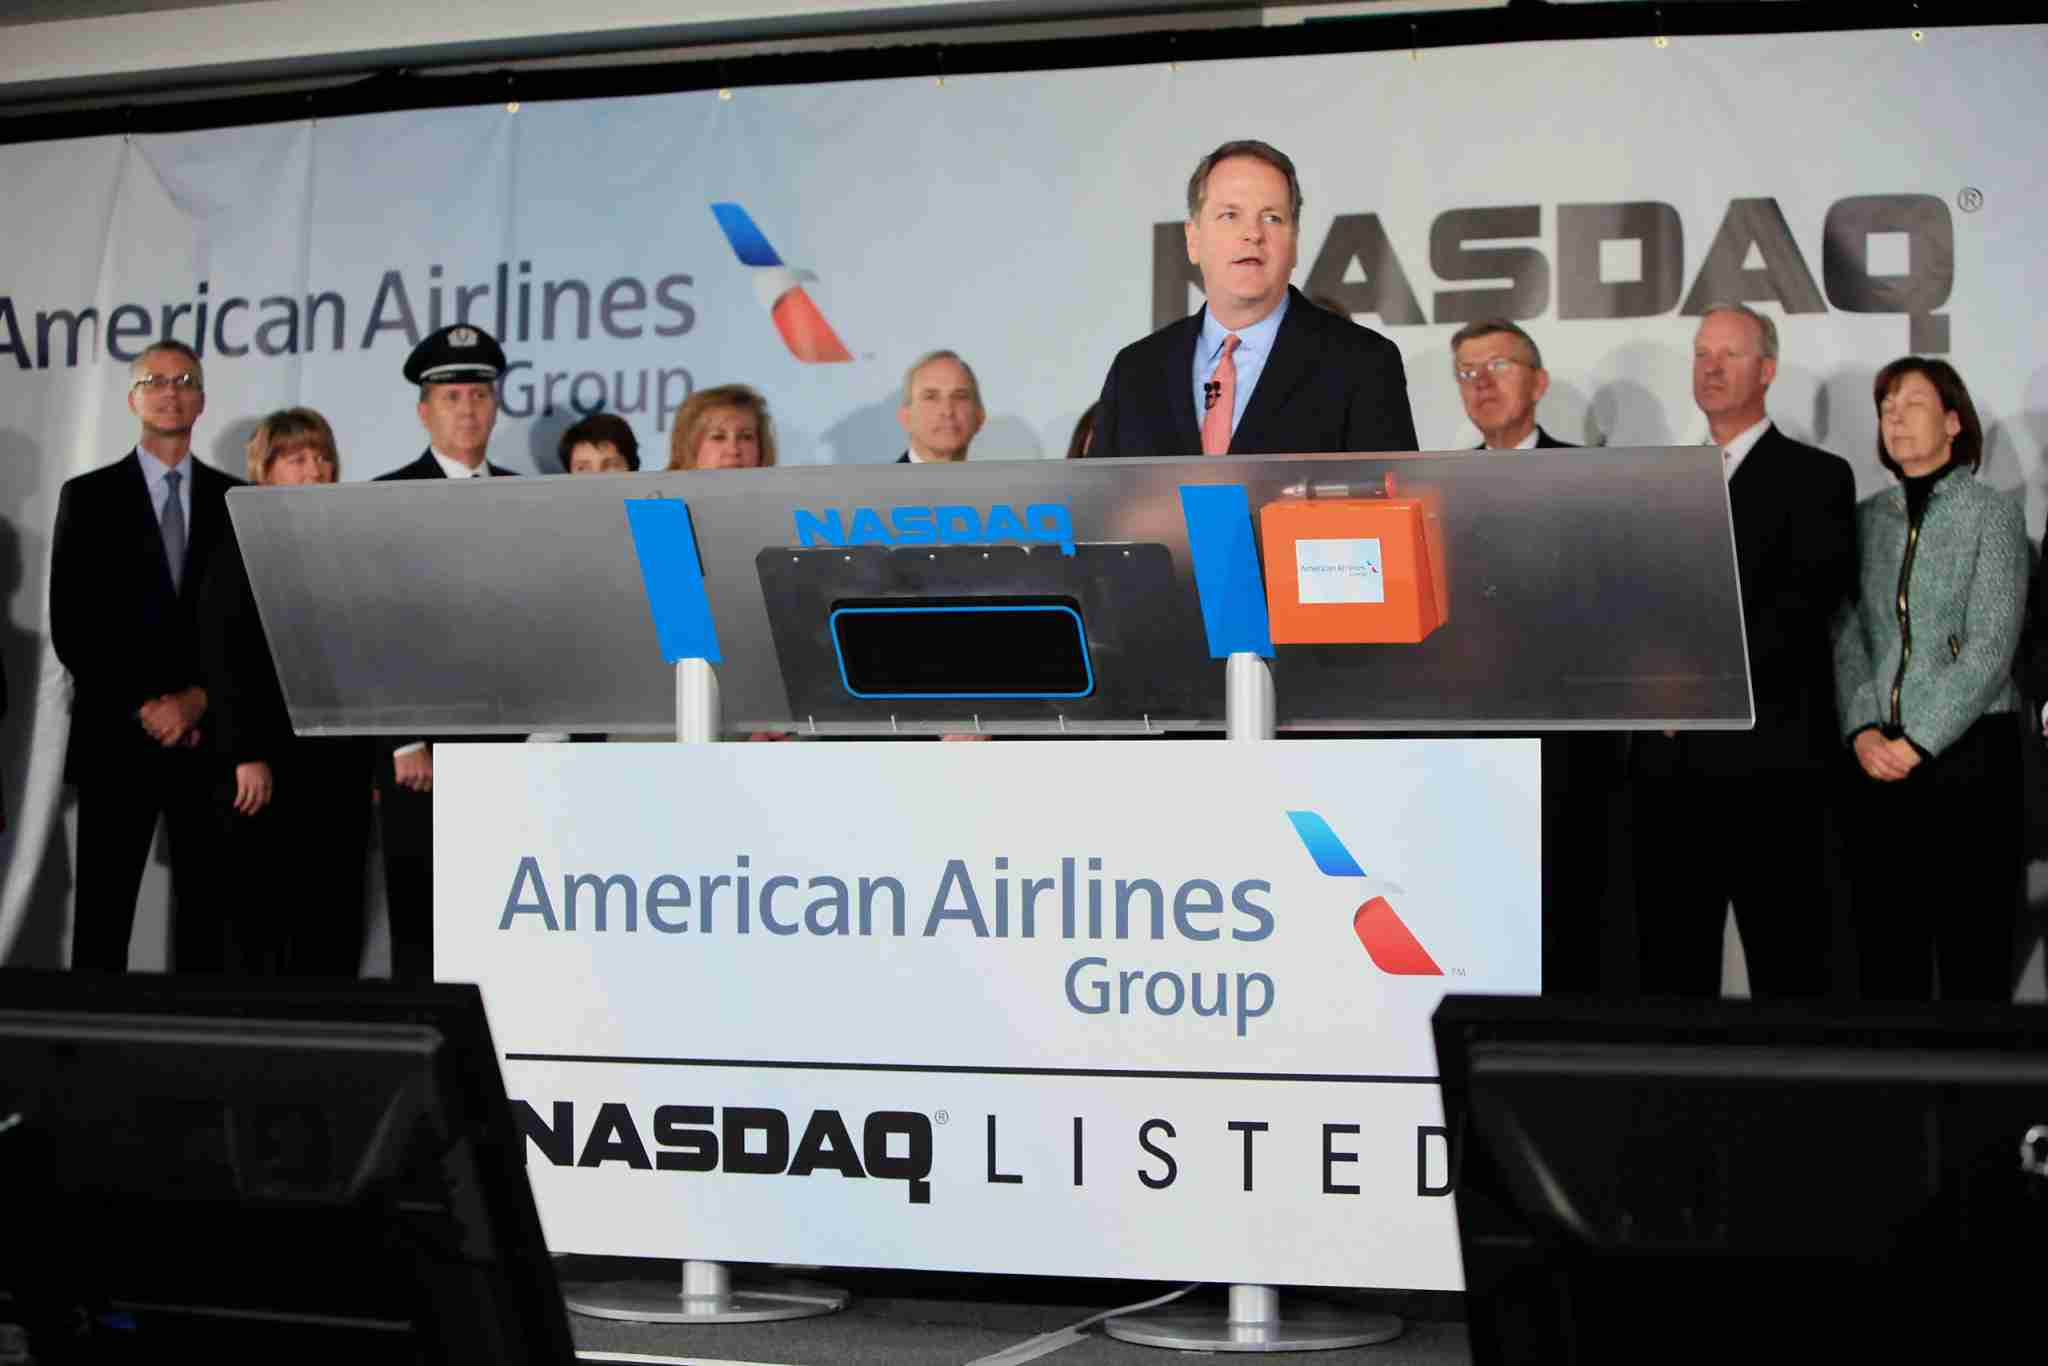 """Douglas """"Doug"""" Parker, chief executive officer of the newly formed American Airlines Group Inc., speaks before remotely ring the opening bell of the Nasdaq MarketSite at American Airlines headquarters in Fort Worth, Texas, U.S., on Monday, Dec. 9, 2013. American Airlines Group Inc., formed today when AMR Corp. and US Airways Group Inc. combined, is poised to rise on confidence that the worlds largest carrier can avoid the pitfalls that dragged down other mergers. Photographer: Ben Torres/Bloomberg via Getty Images"""